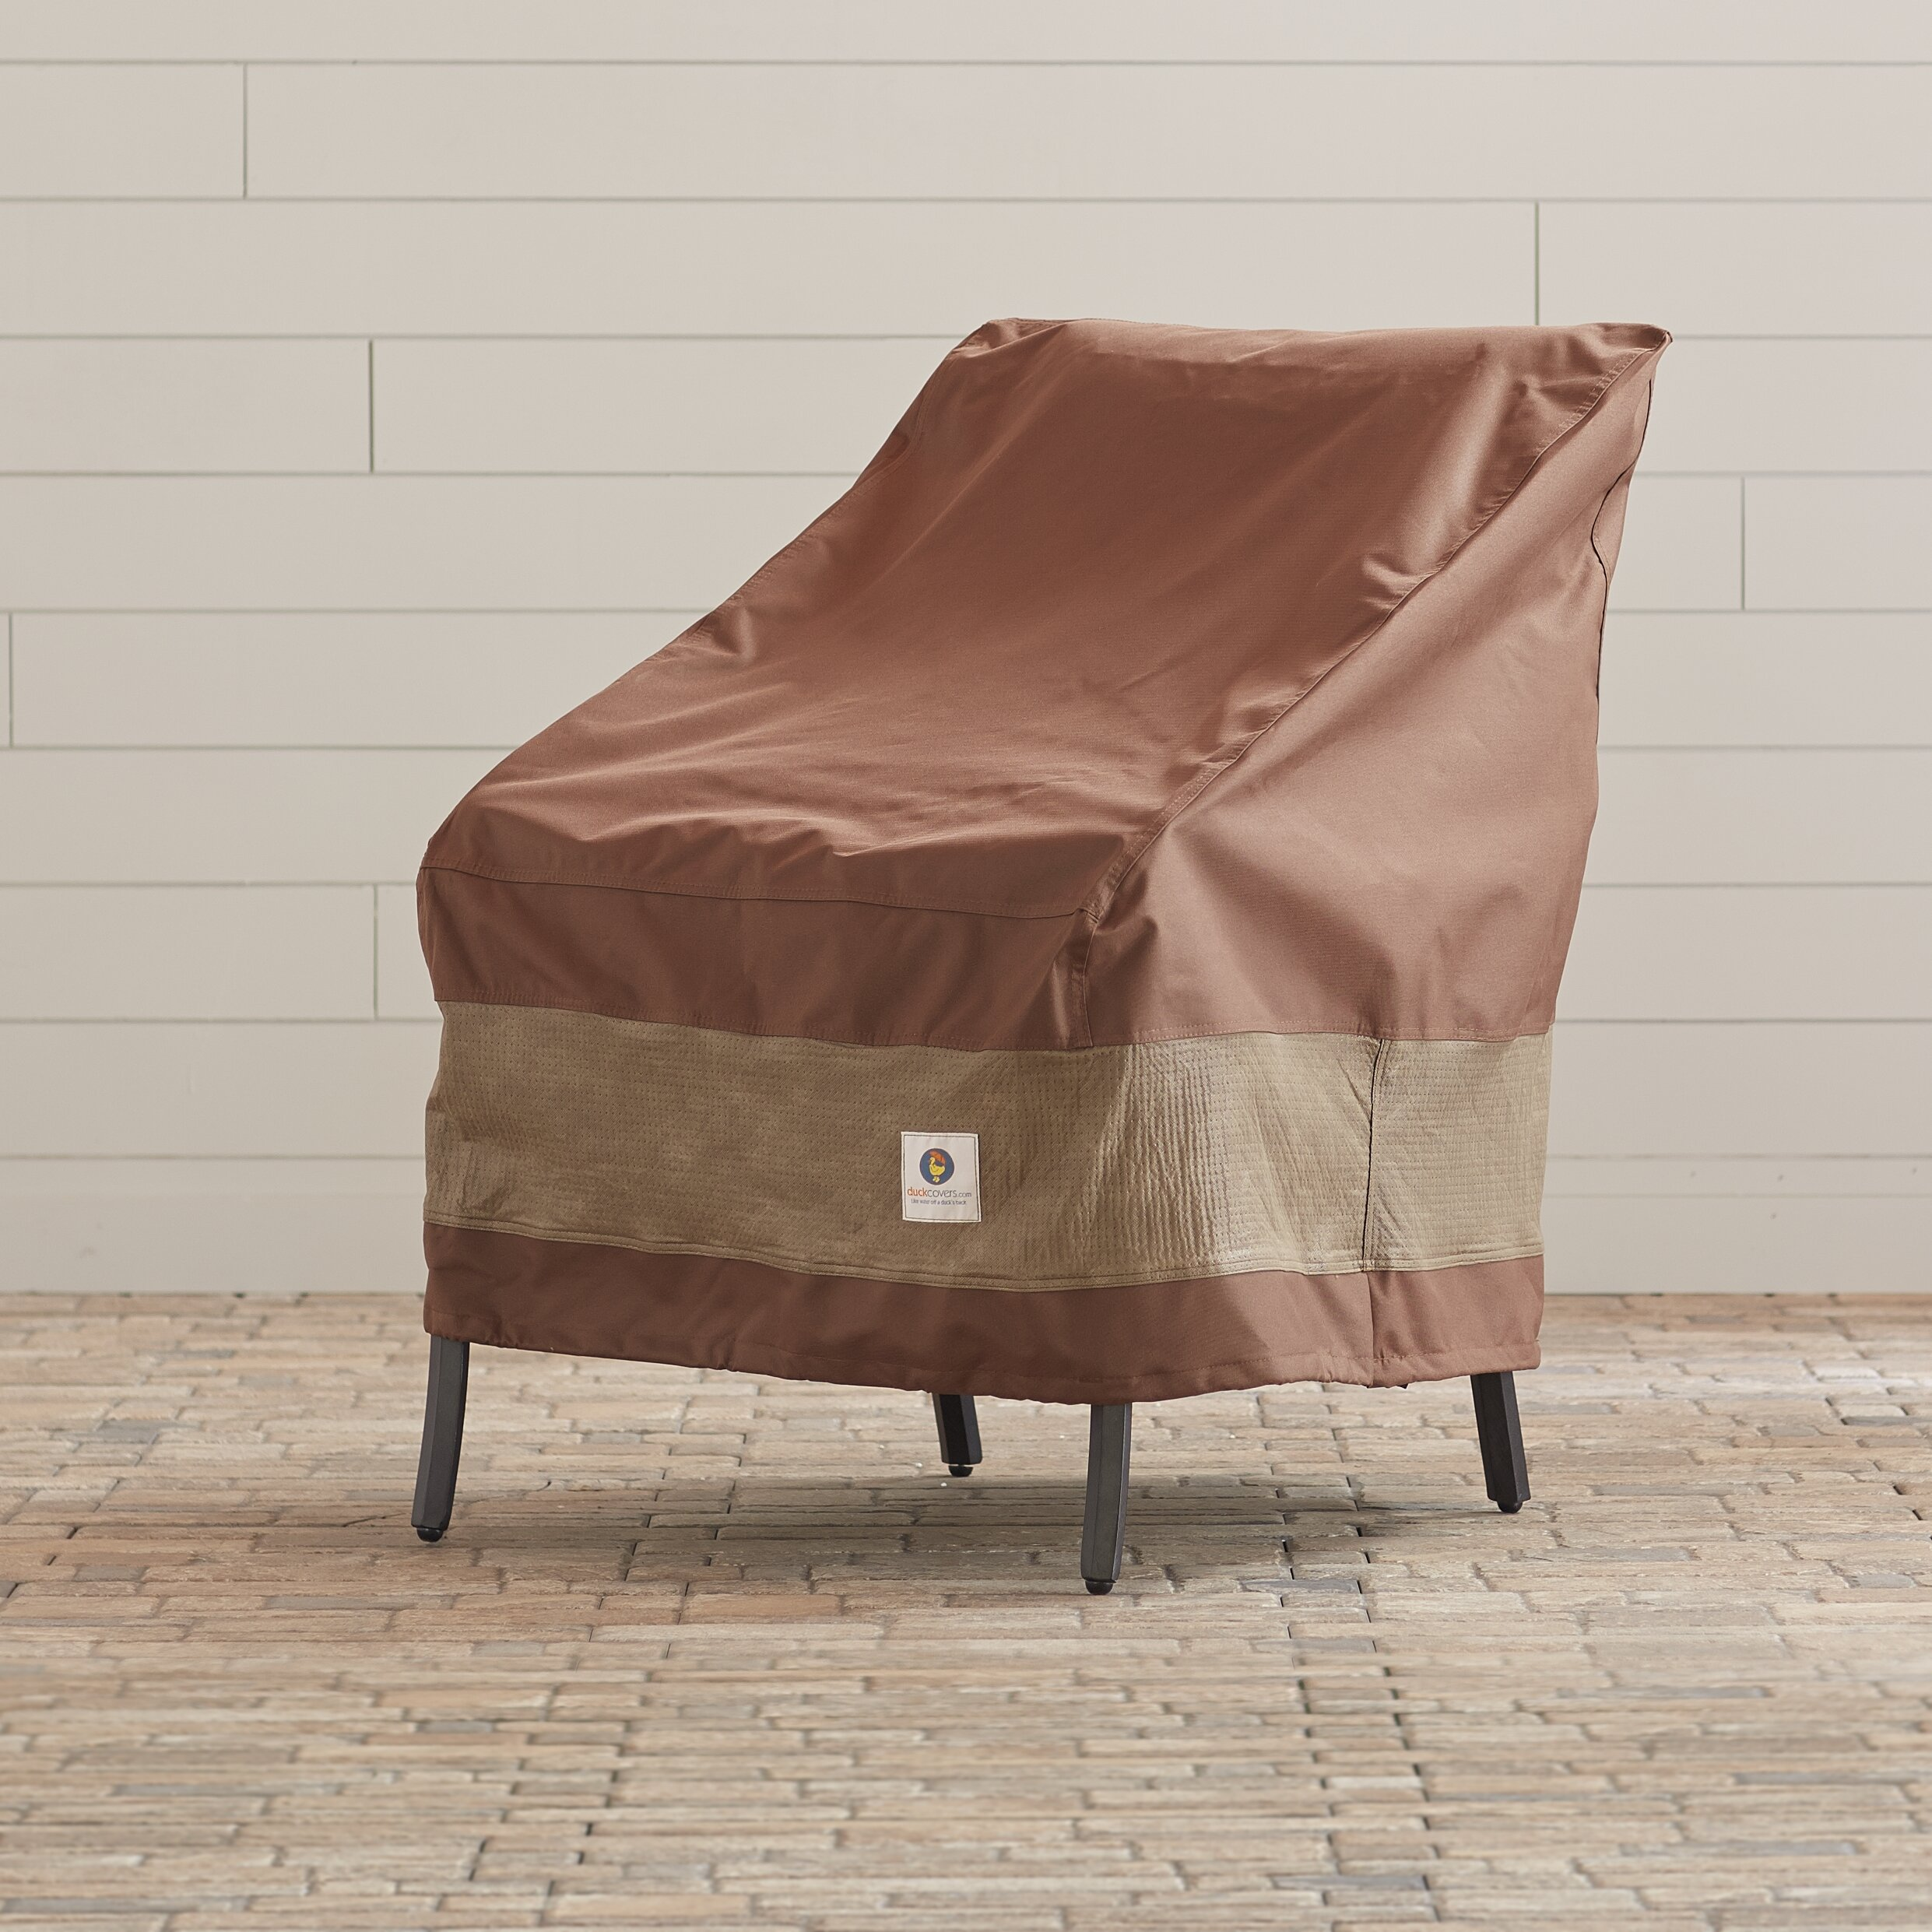 Duck Covers Ultimate Patio Chair Cover Reviews Wayfair